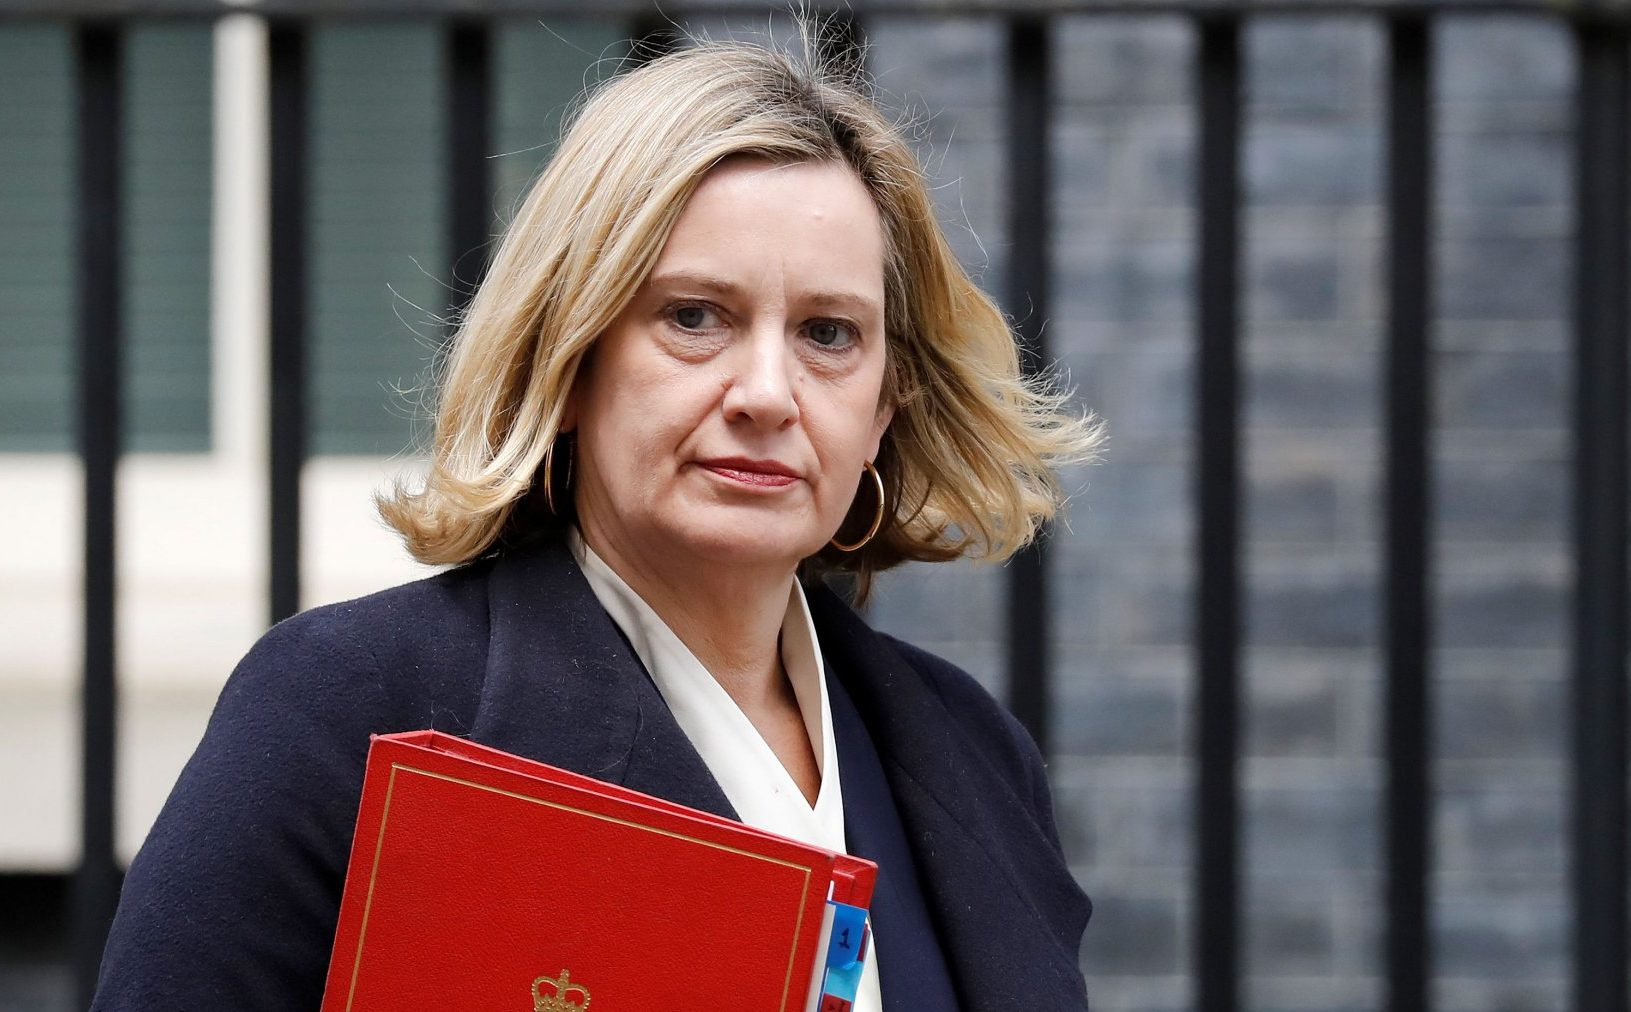 """Britain's Work and Pensions Secretary Amber Rudd leaves after attending the weekly cabinet meeting at 10 Downing Street in London on February 19, 2019. - The British government on Friday dismissed as a """"hiccup"""" its latest parliamentary defeat over Brexit, saying it would press on with trying to renegotiate its EU divorce deal as exit day looms in just six weeks. (Photo by Tolga AKMEN / AFP)TOLGA AKMEN/AFP/Getty Images"""